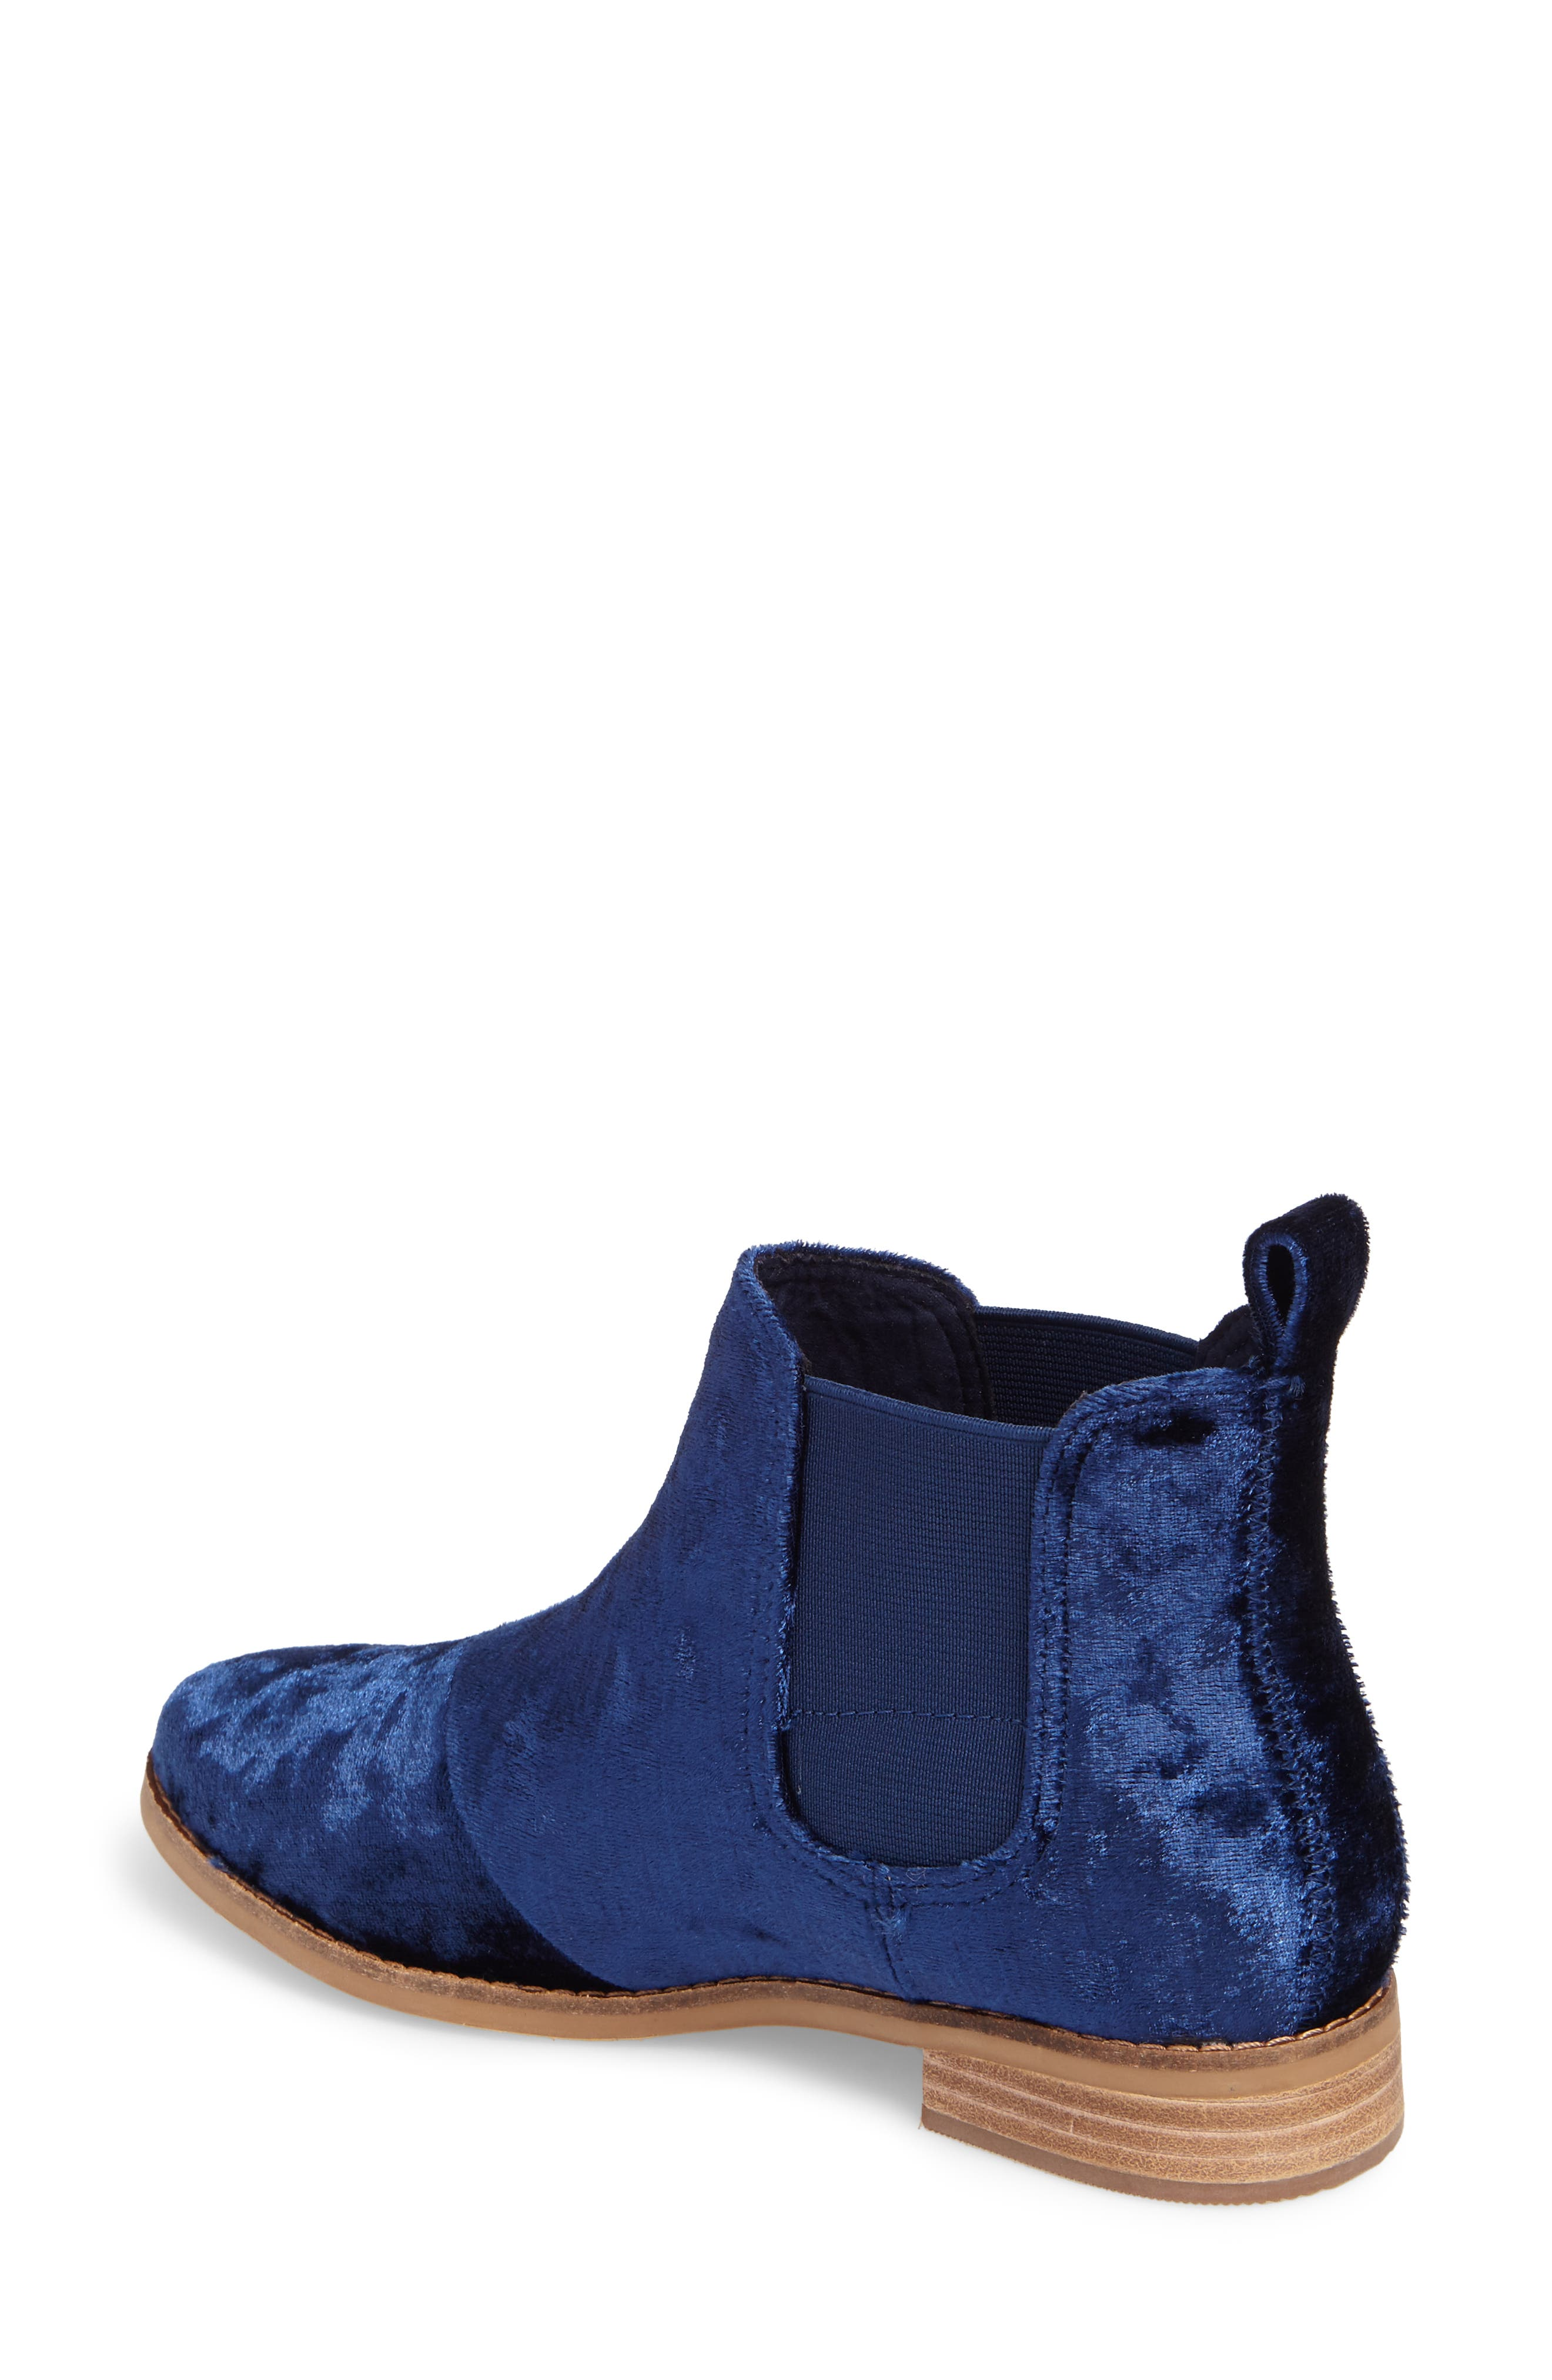 Ella Bootie,                             Alternate thumbnail 2, color,                             Navy Fabric